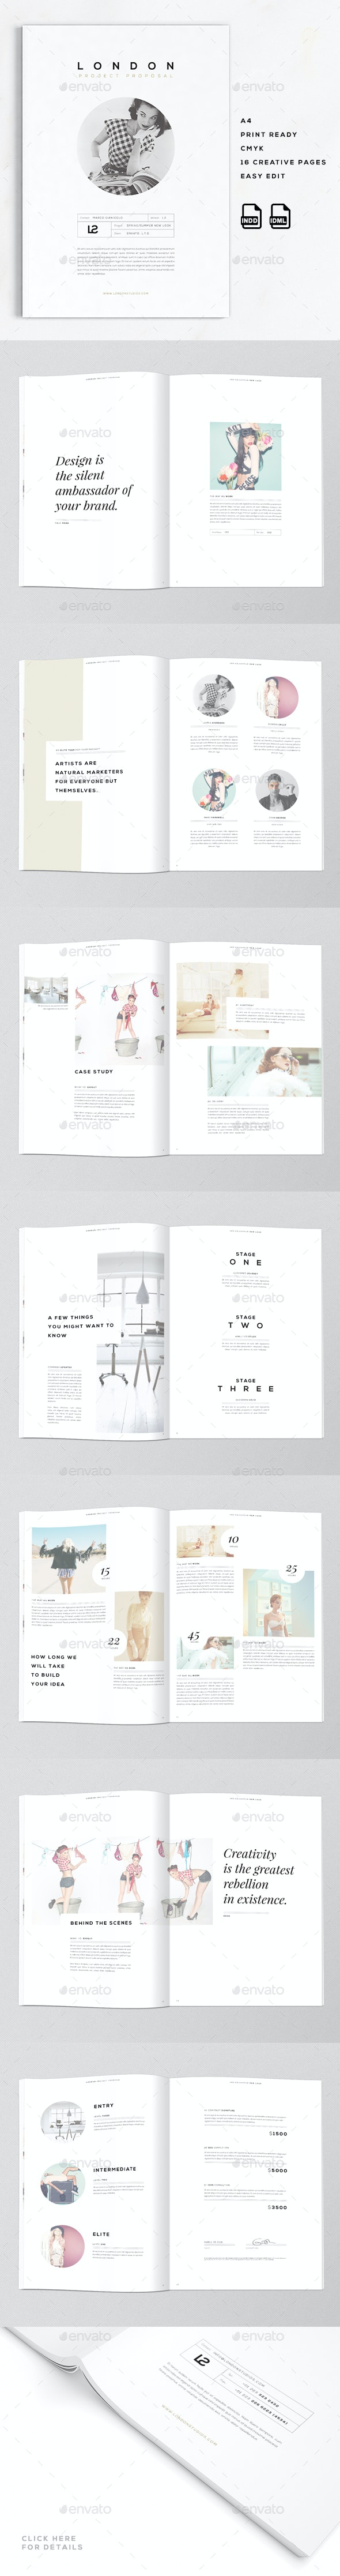 London   A4 Creative Business Proposal  - Proposals & Invoices Stationery